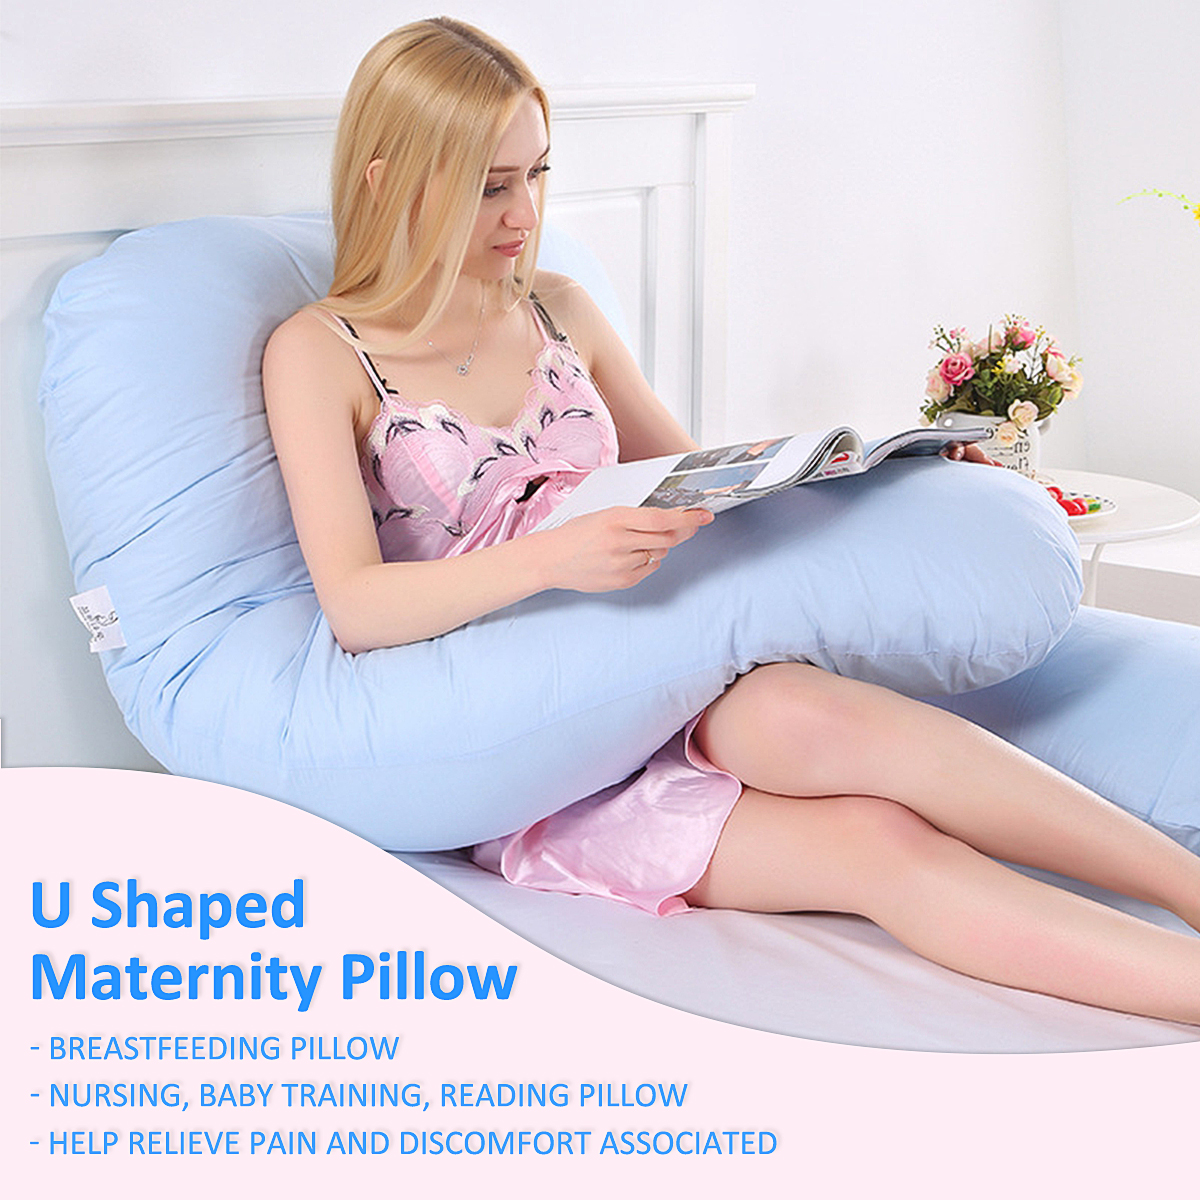 Large U Shape Total Body Pillow Pregnancy Maternity Comfort Support Cushion Sleep Nursing Maternity Sleep bed Pillow Blue